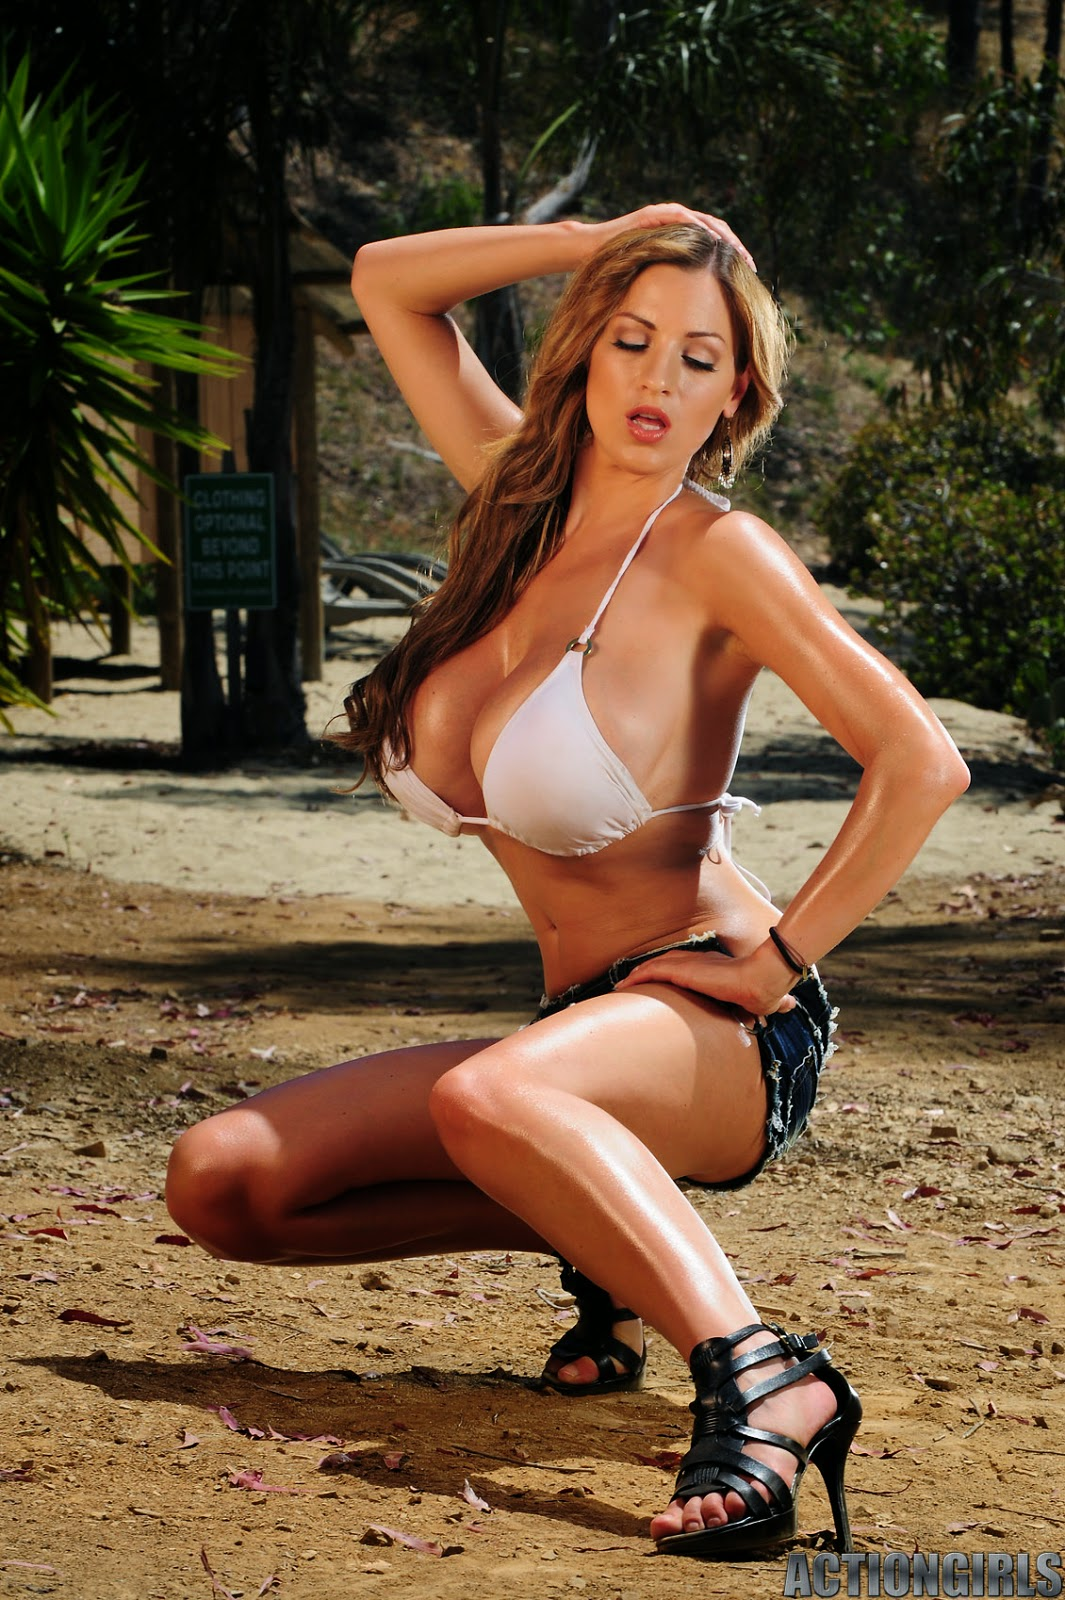 The 20 Hottest Jordan Carver Pics You Will Ever See